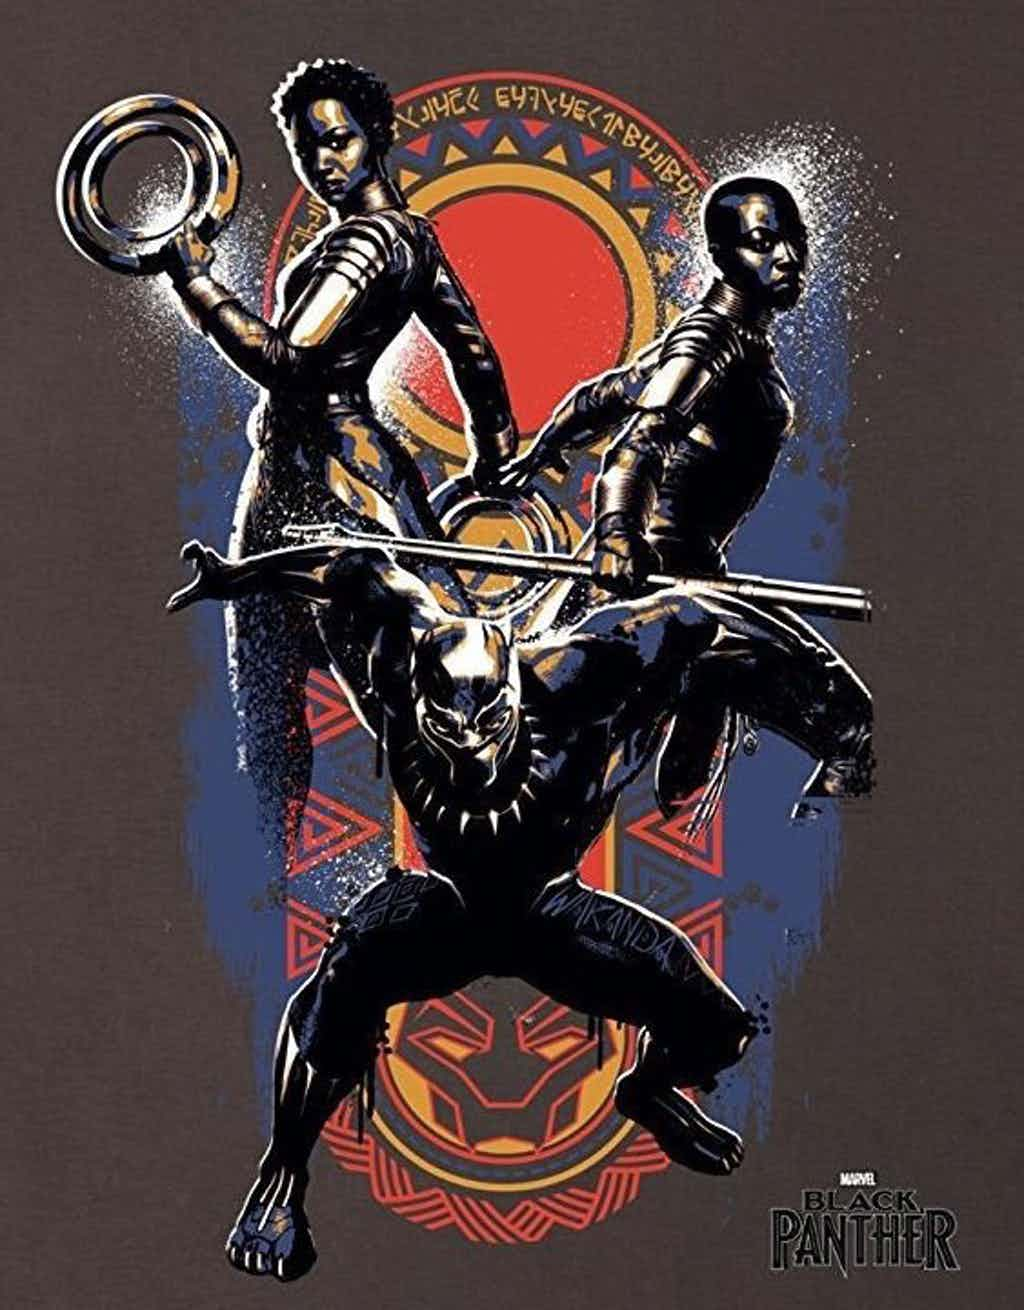 """Where to Buy """"Black Panther"""" Movie Shirts - The Geek Twins"""